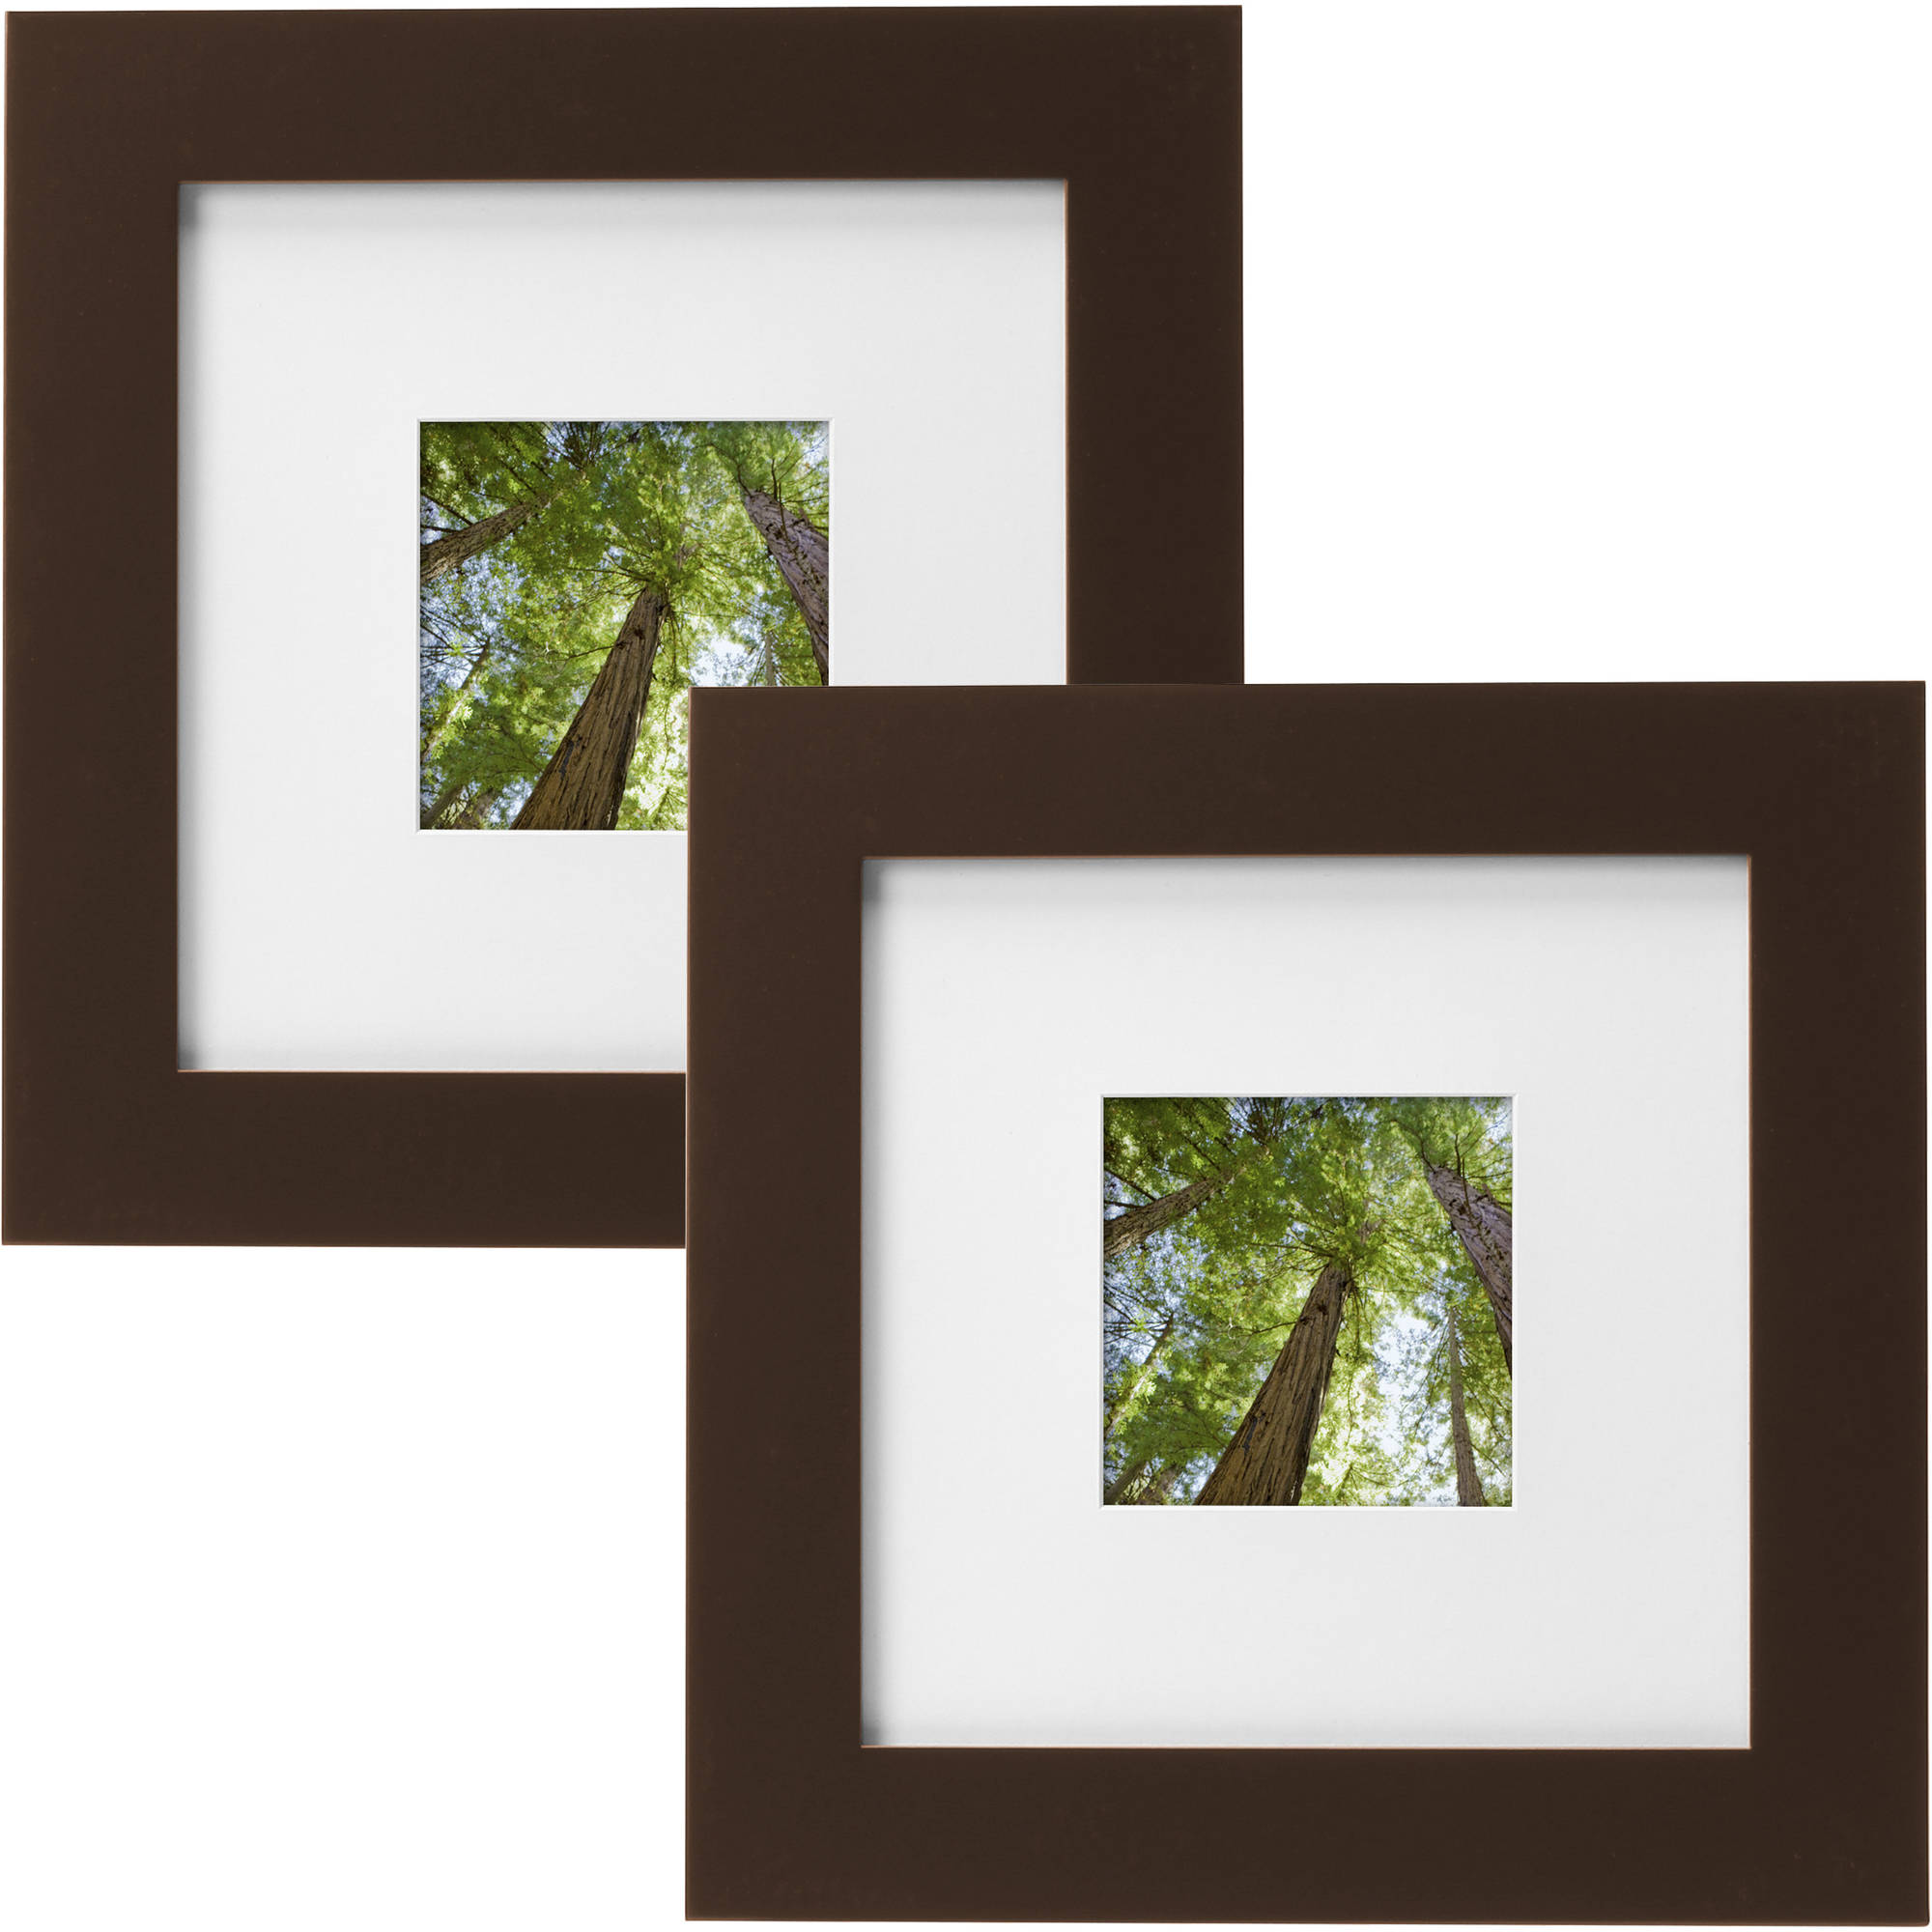 Mainstays Museum 8 Quot X 8 Quot Matted To 4 Quot X 4 Quot Solid Wood